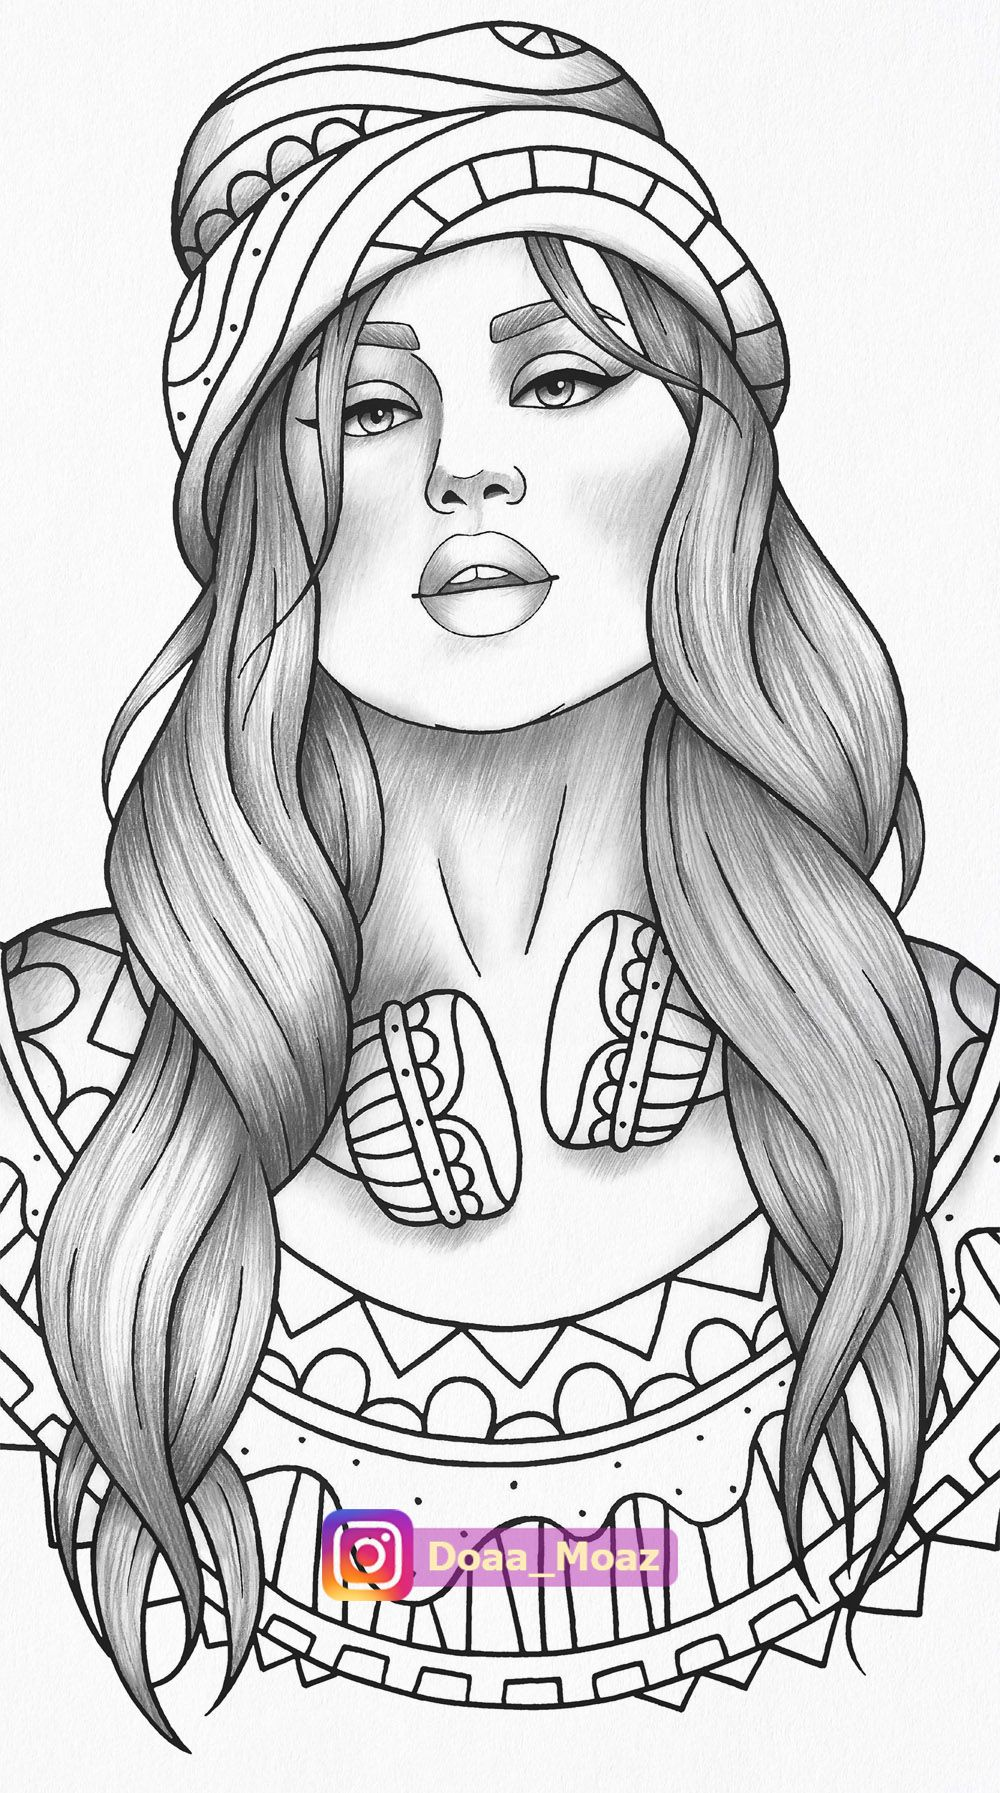 - Adult Coloring Page Girl Portrait With Headphones And Knitted Cap